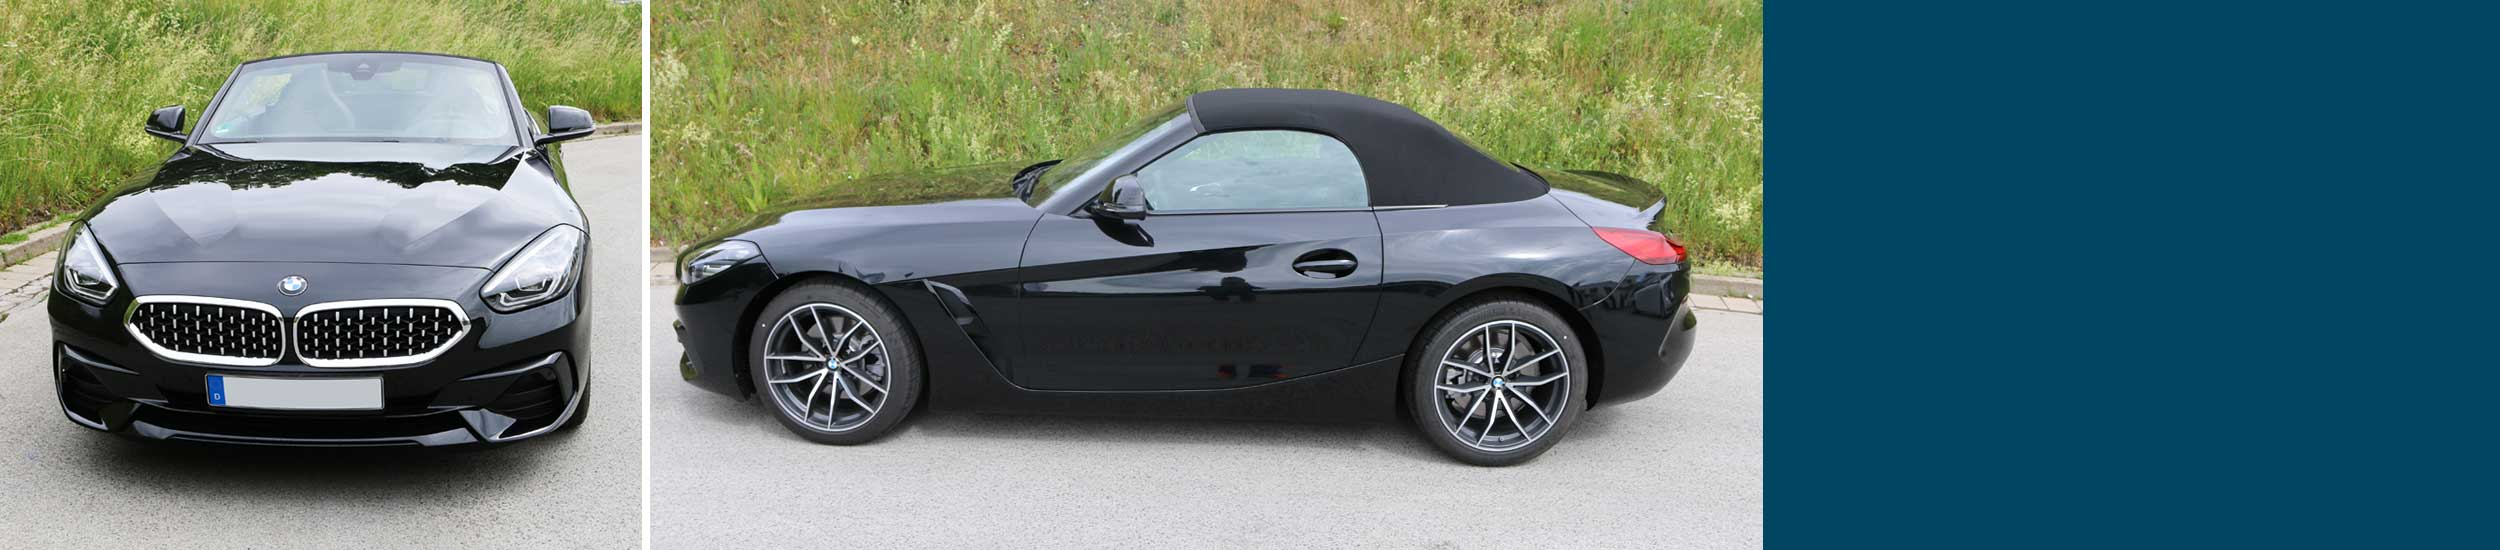 Sparmobile BMW Z4 -Roadster